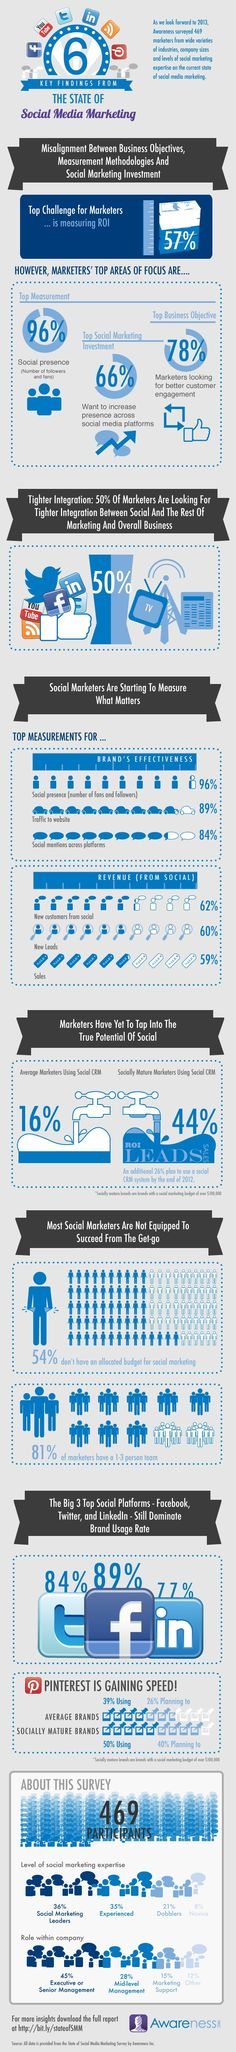 Key Findings from the State of Social Media Marketing